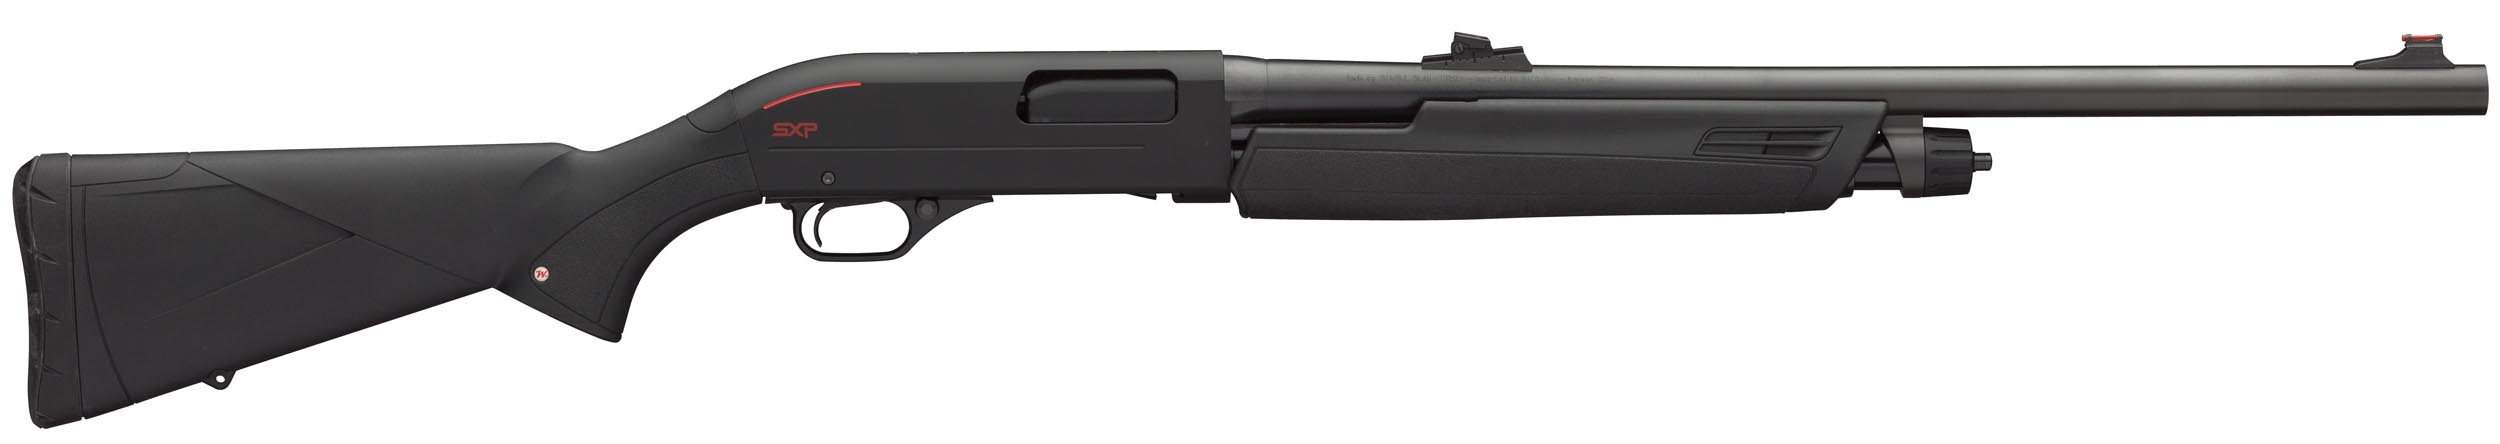 BRO55240 SXP Black Shadow Deer Winchester Shotgun - 12/76 - BRO55240